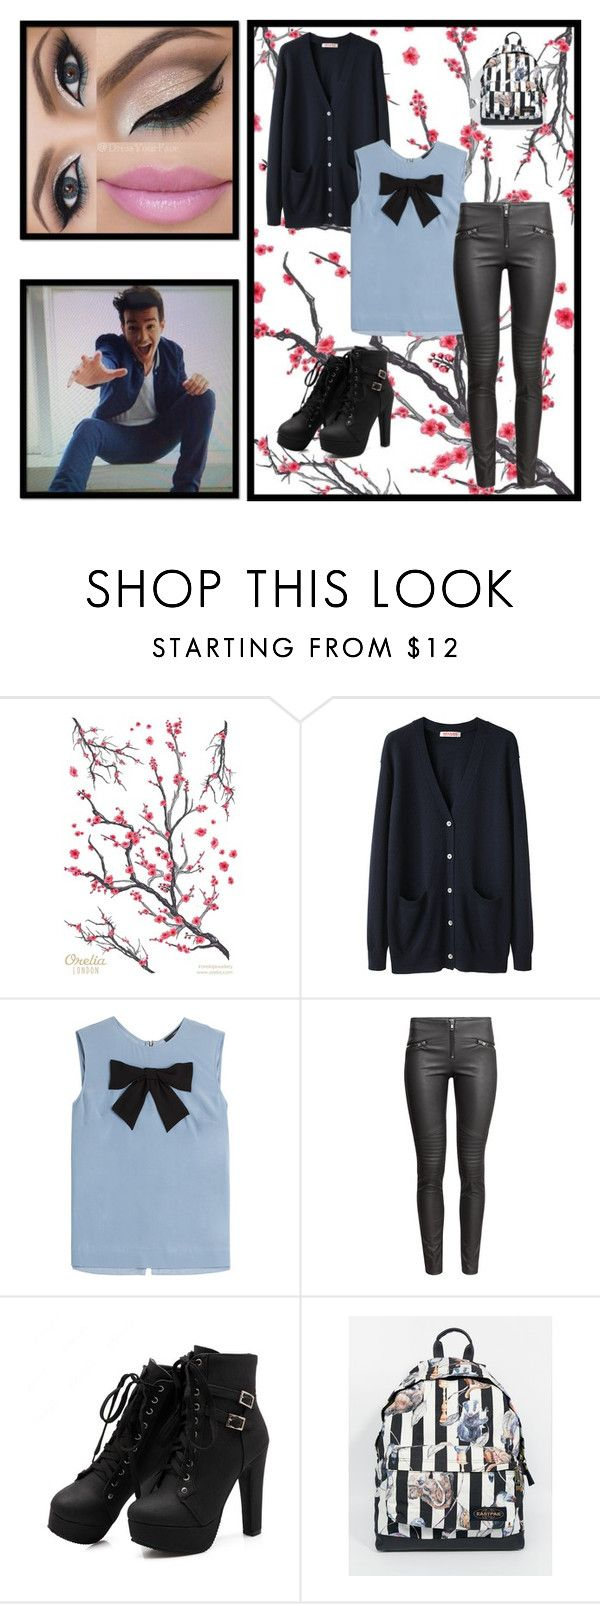 """Wanted"" by believeinunicorns-137 ❤ liked on Polyvore featuring moda, Topshop, Organic by John Patrick, Steffen Schraut, H&M y Eastpak"